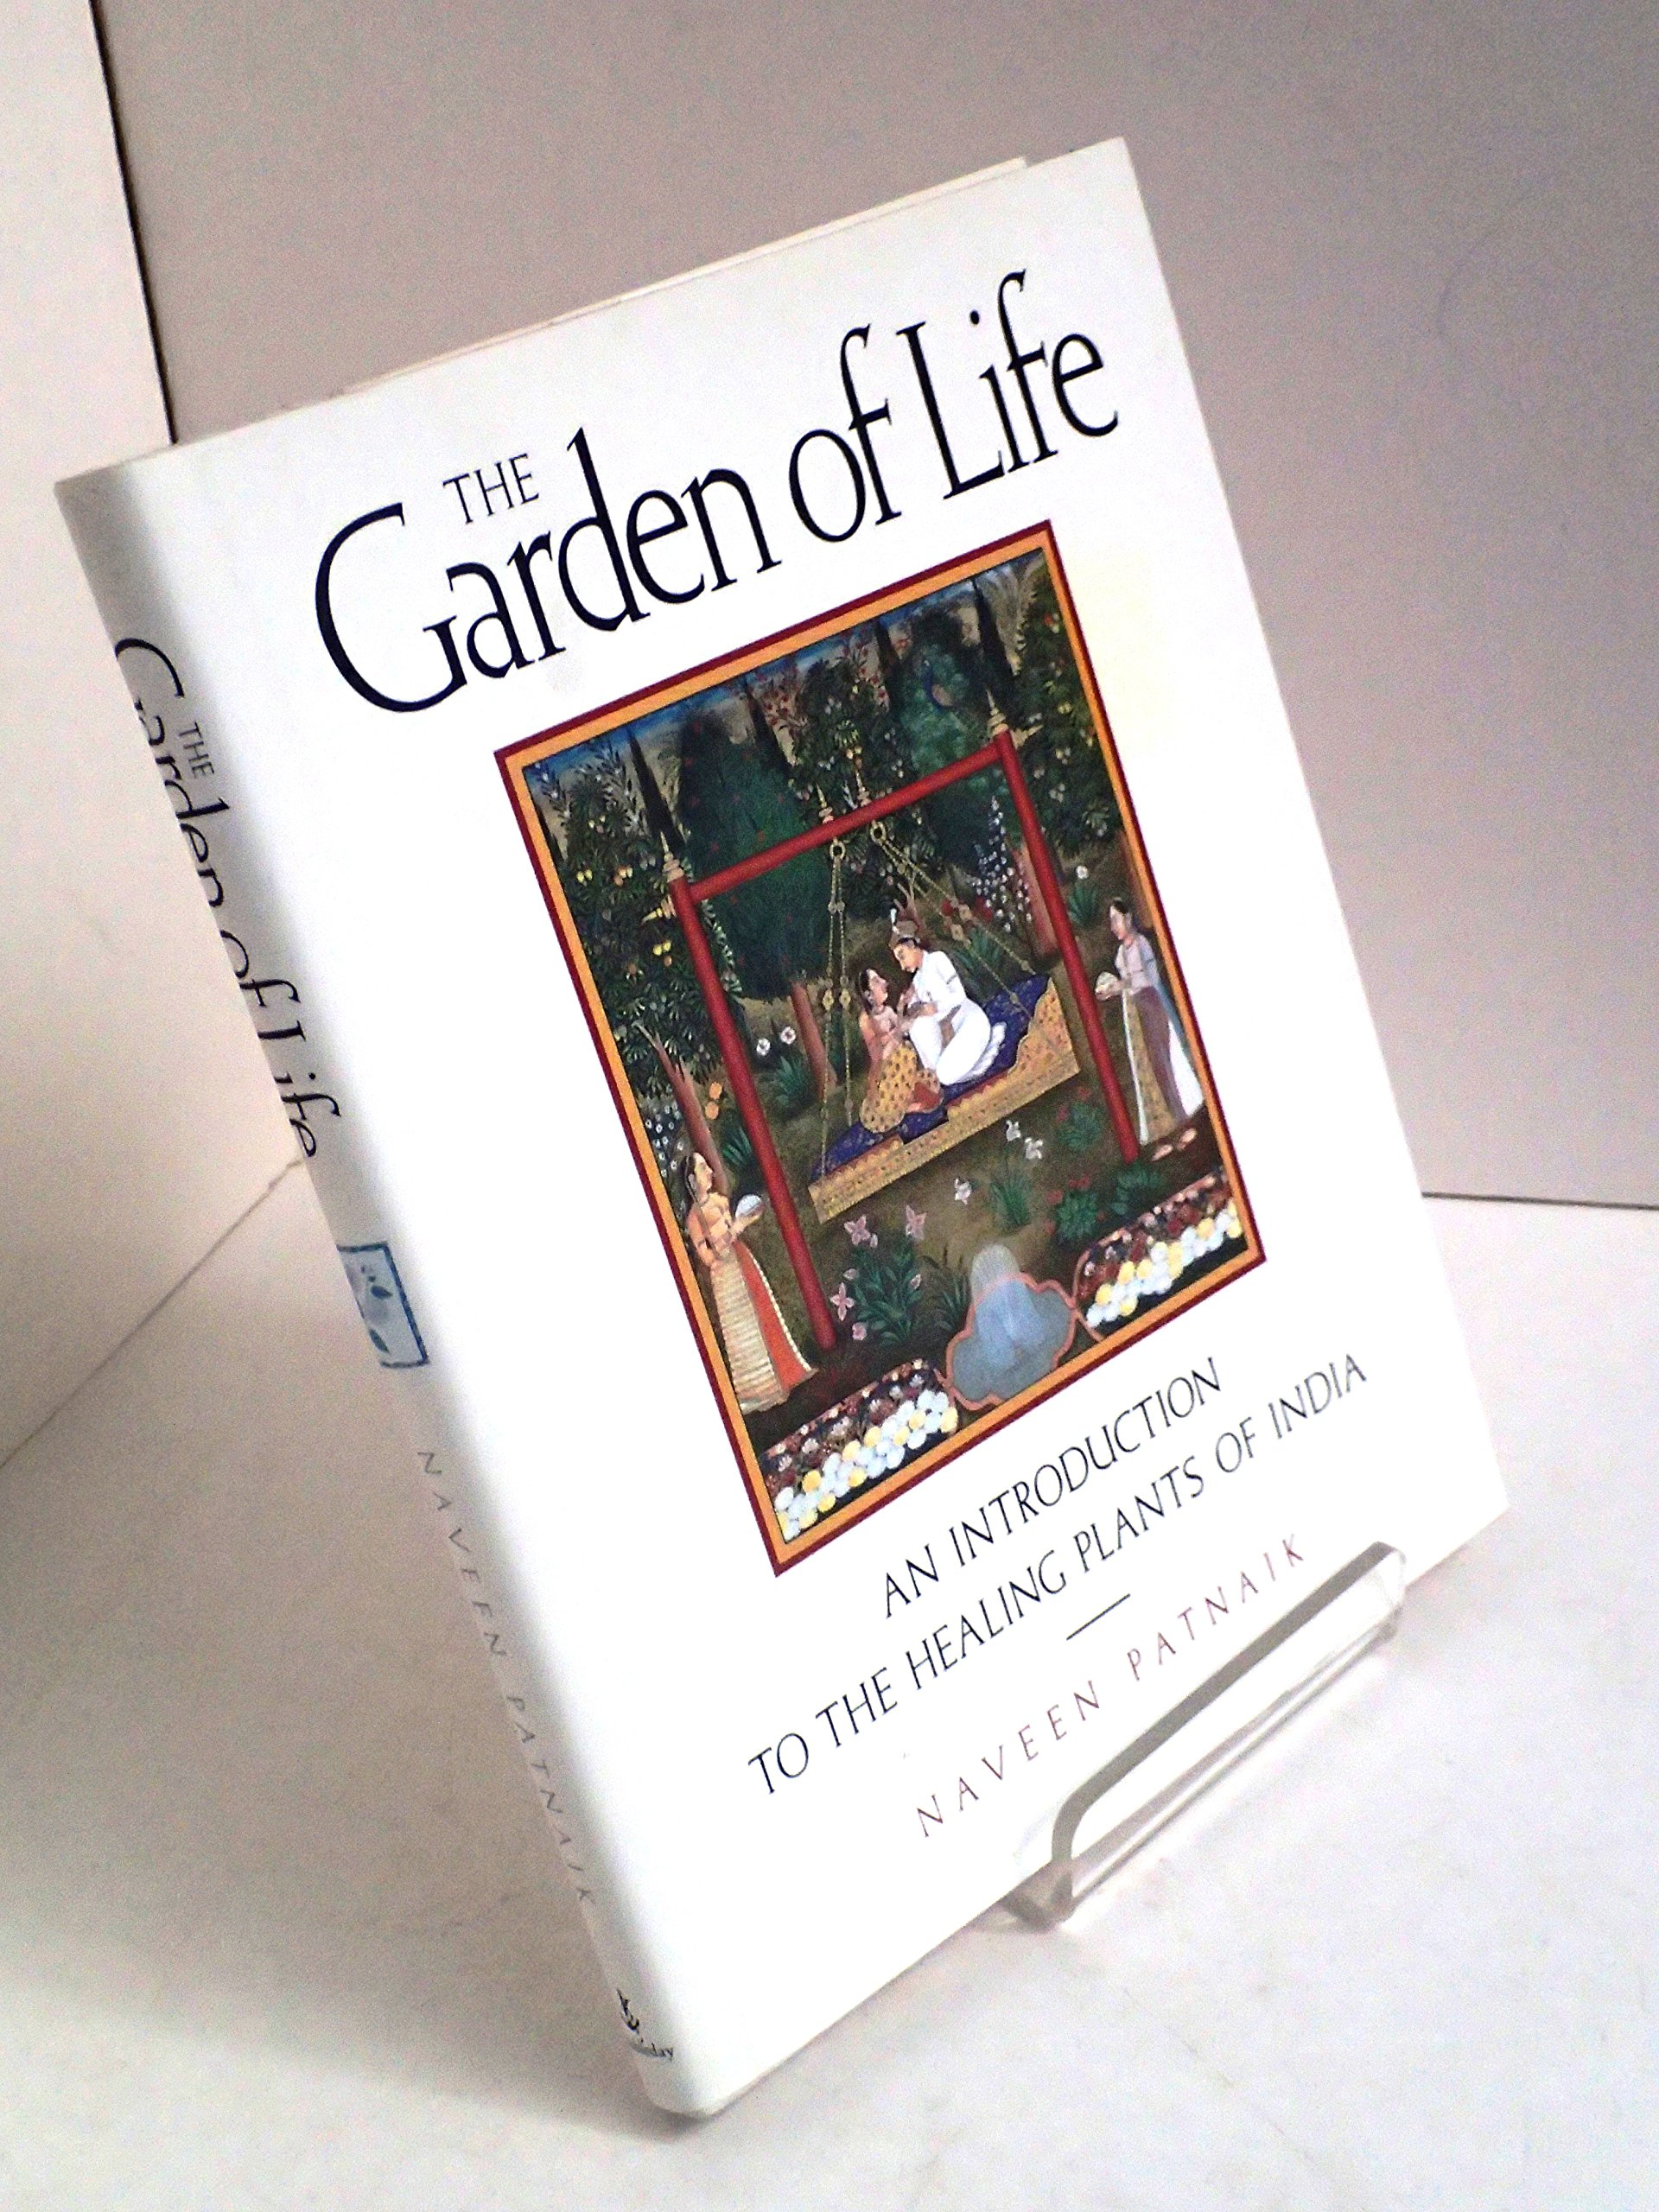 Buy The Garden Of Life Book Online At Low Prices In India | The Garden Of  Life Reviews U0026 Ratings   Amazon.in